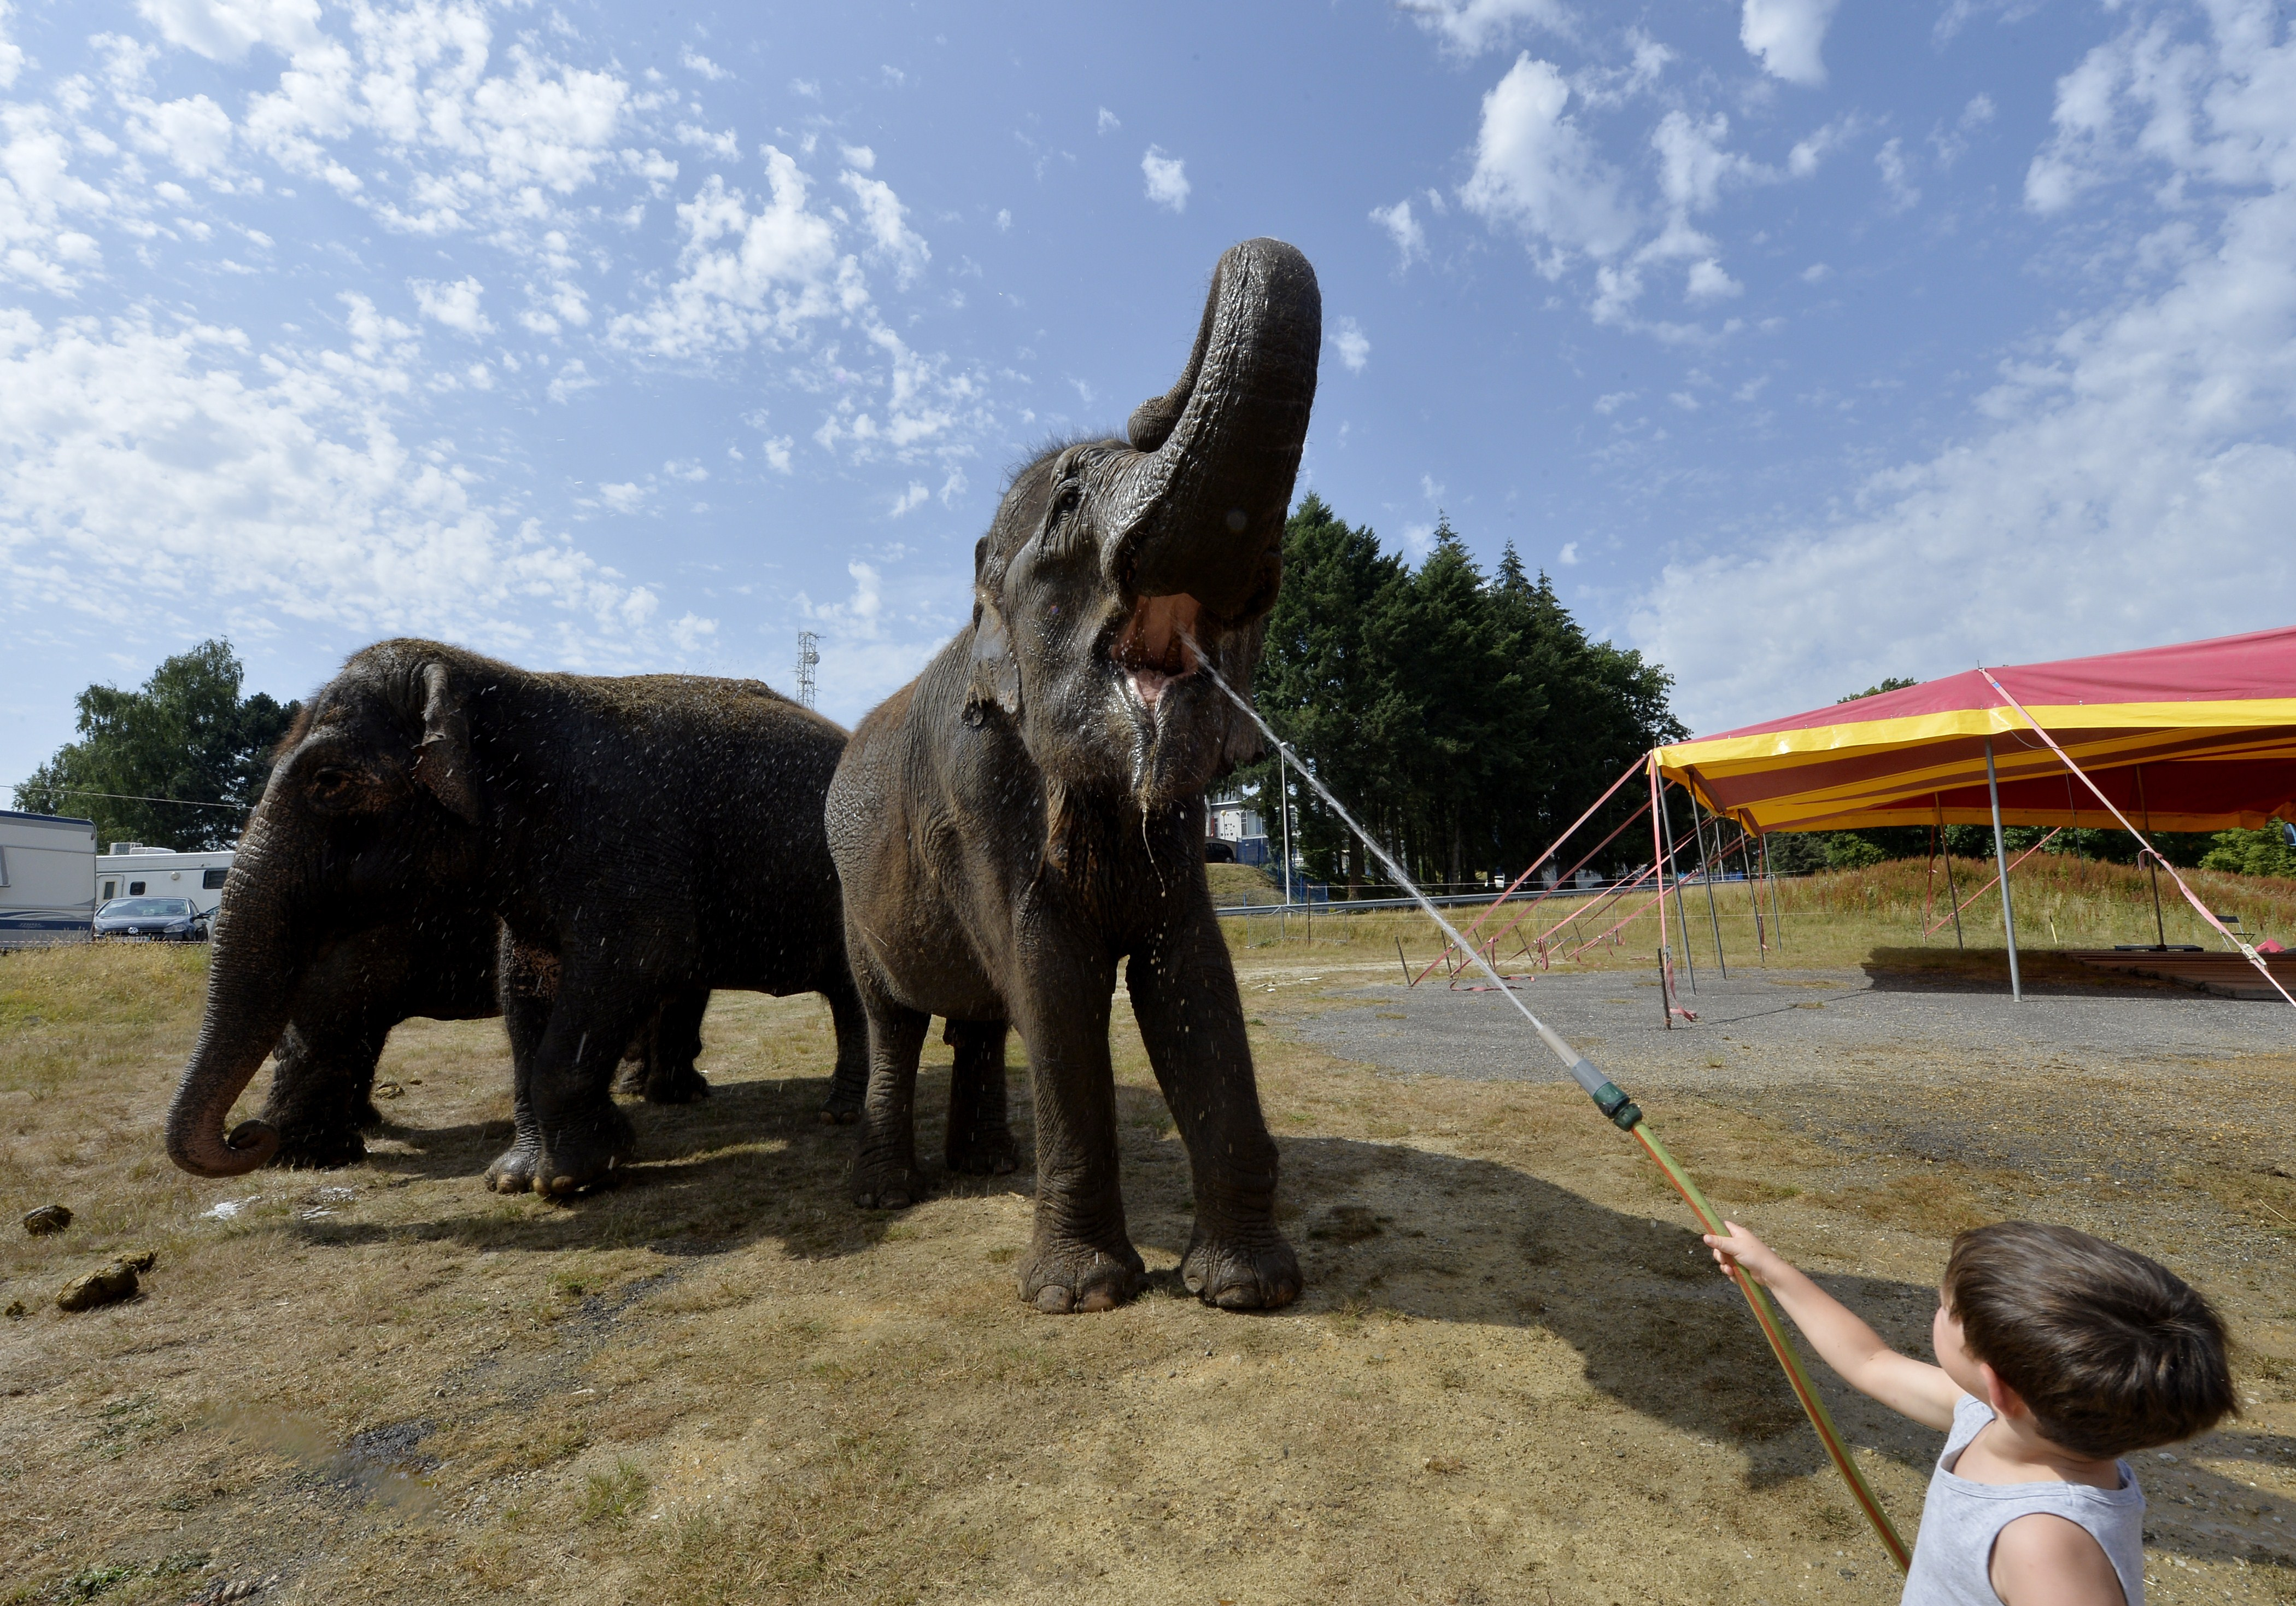 FRANCE-WEATHER-CLIMATE-HEATWAVE-CIRCUS